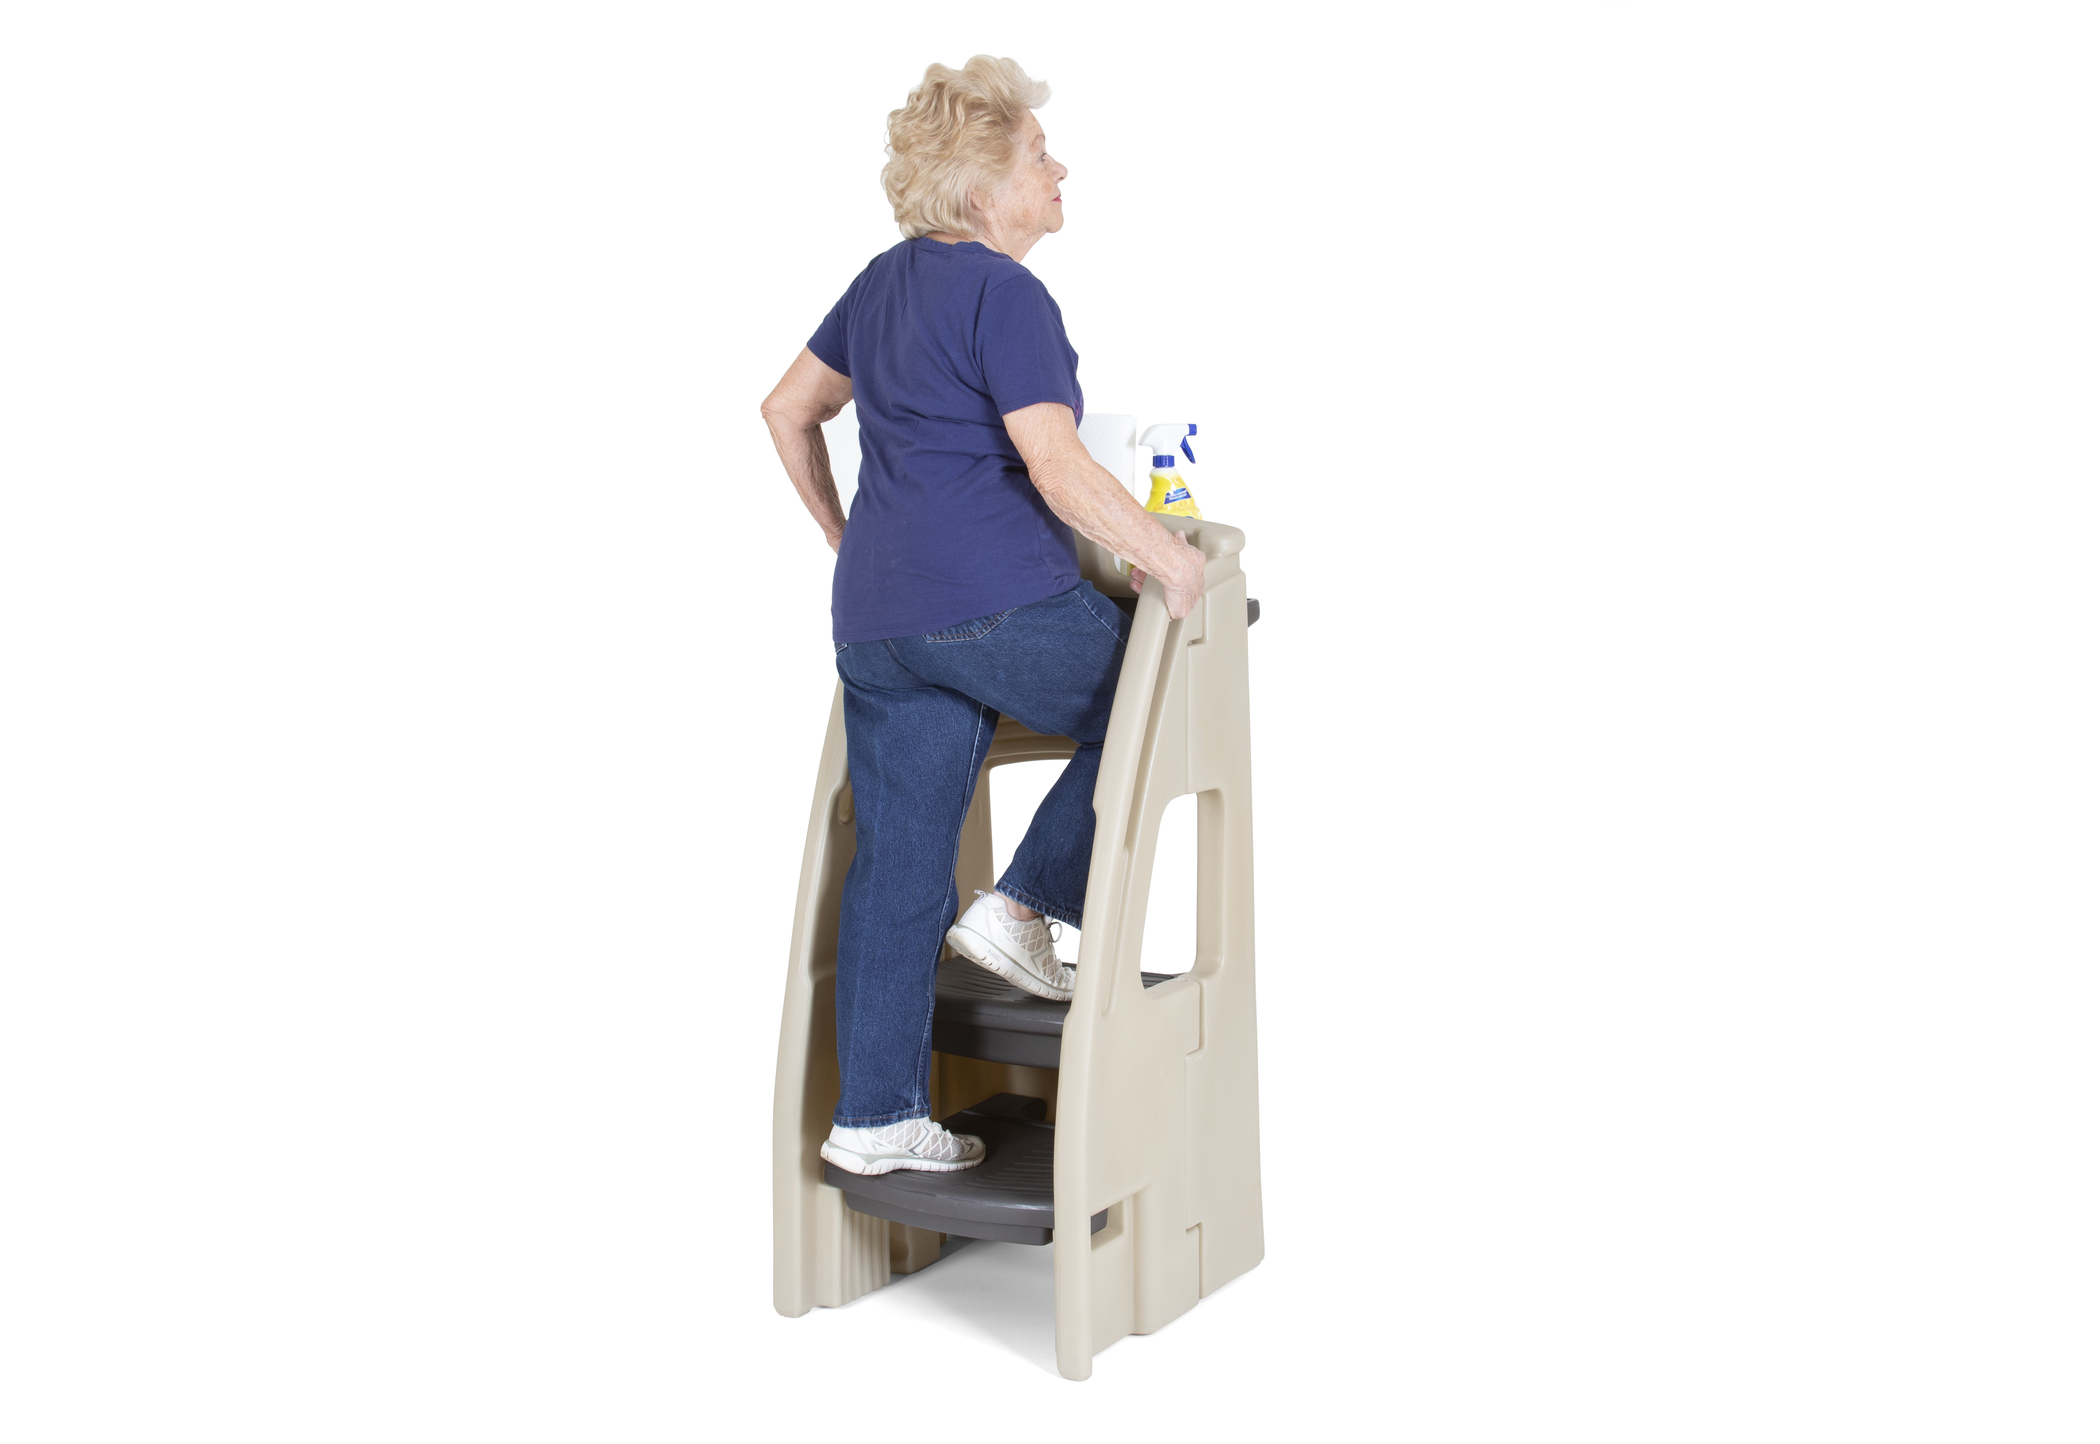 The Simplay3 Company Enhances Balance Stability And Mobility In The Two Step Ladder Newswire